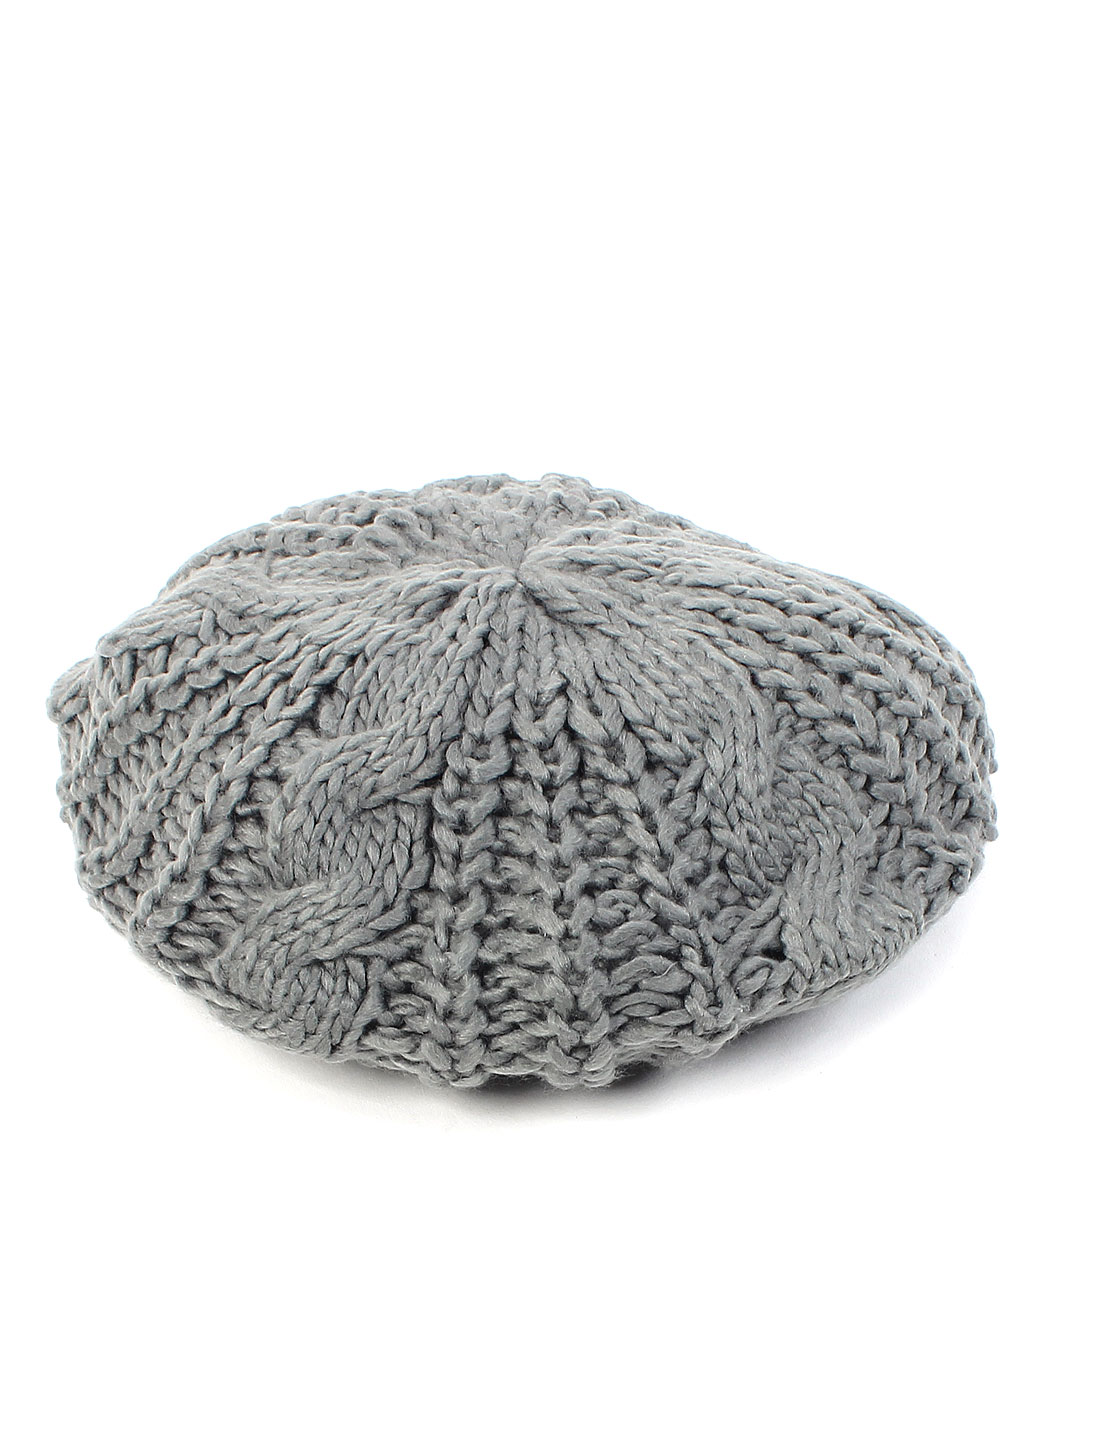 Lady Fashion Winter Warm Soft Knitted Crochet Baggy Beret Hat Beanie Cap Gray